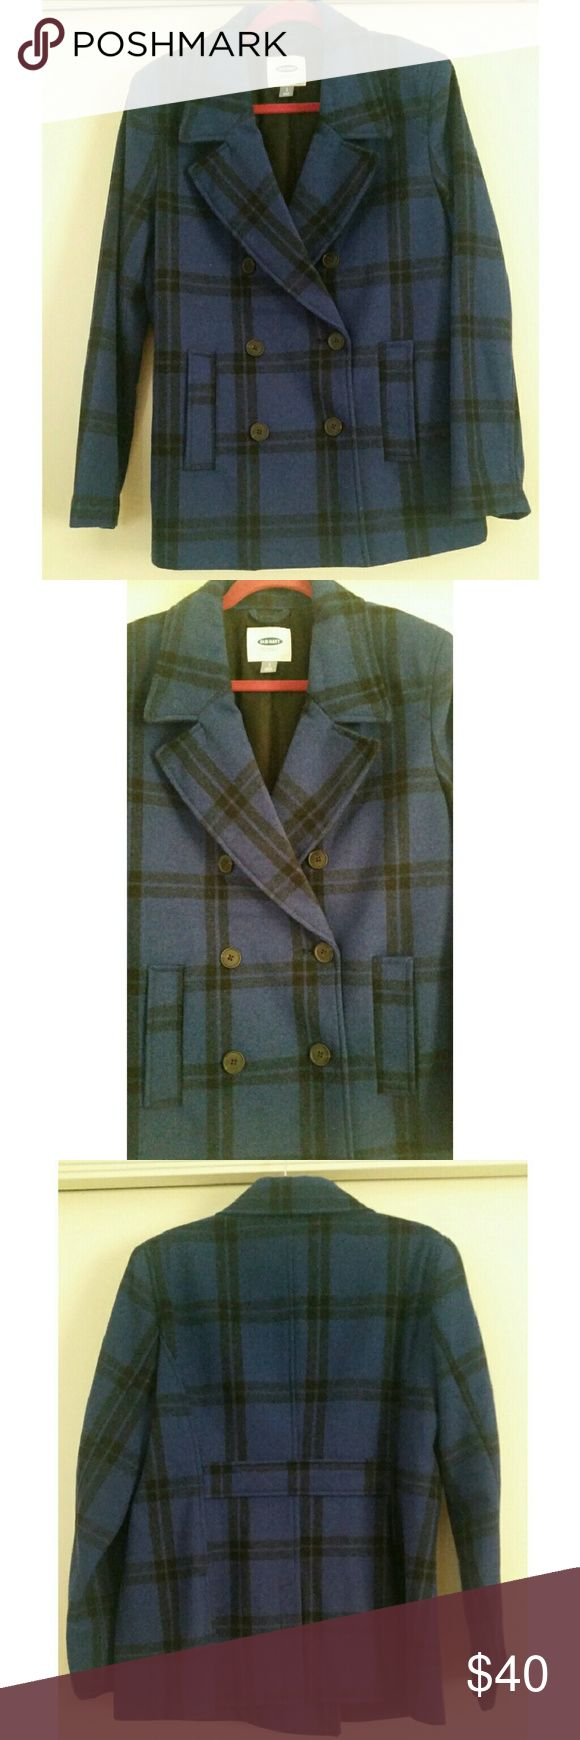 """Old Navy blue black plaid peacoat, size L Old Navy blue black plaid peacoat, size L, tags removed but never worn because i lost weight. Perfect condition! 27"""" length. Old Navy Jackets & Coats Pea Coats"""